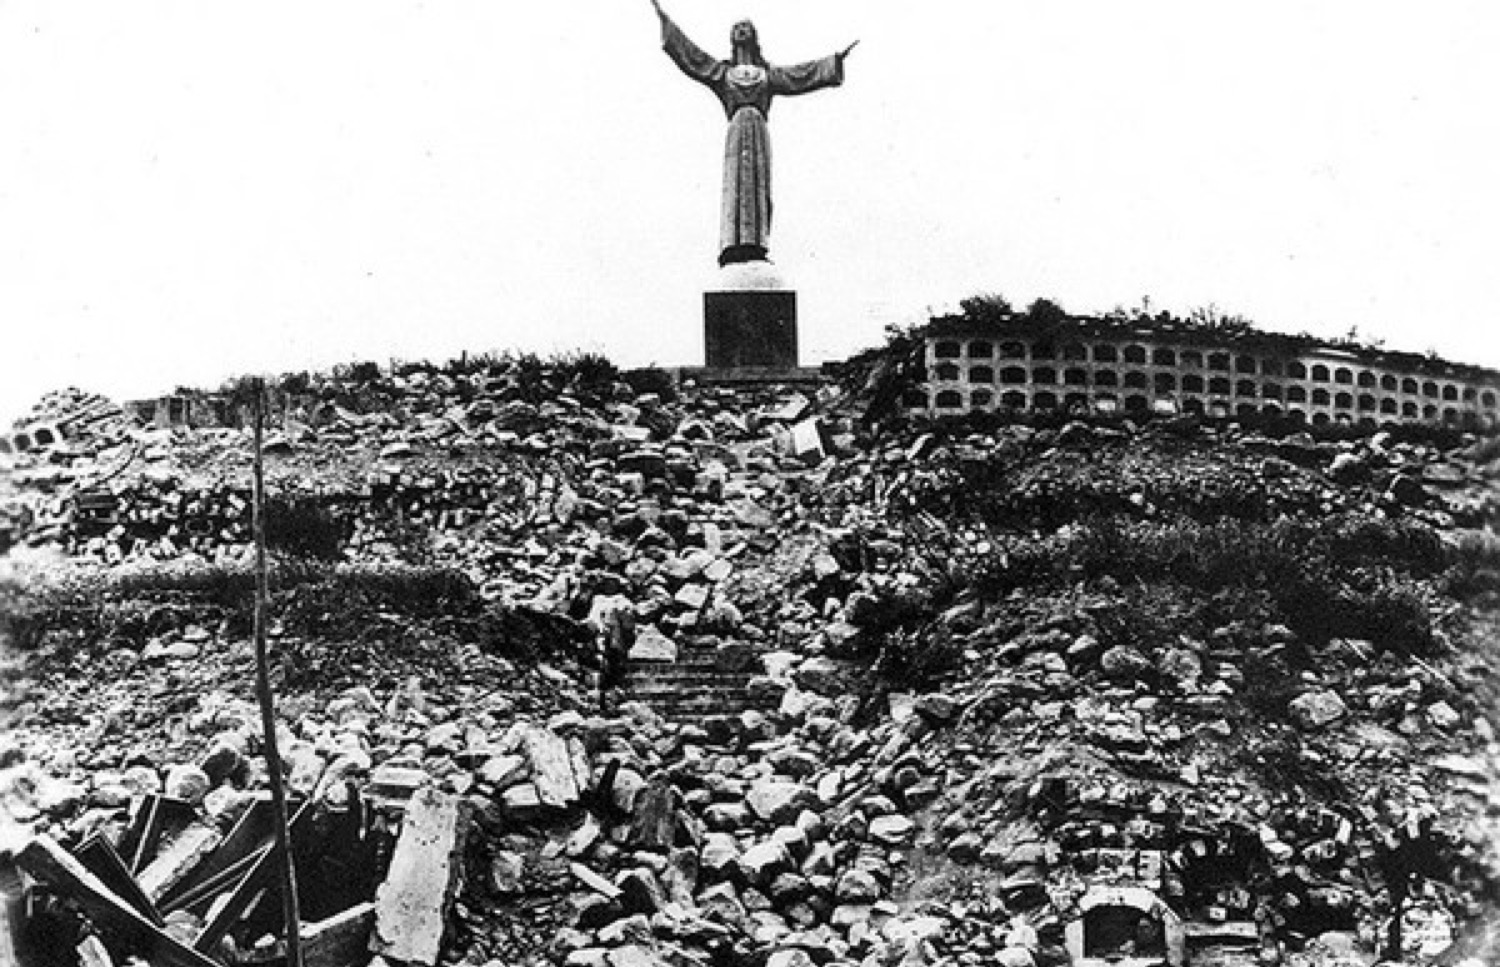 At thef oot of the REAL Jesus, there are no cold nights waiting to be rescued as it was for those who fled to this statue in Yungay on May 31, 1970.